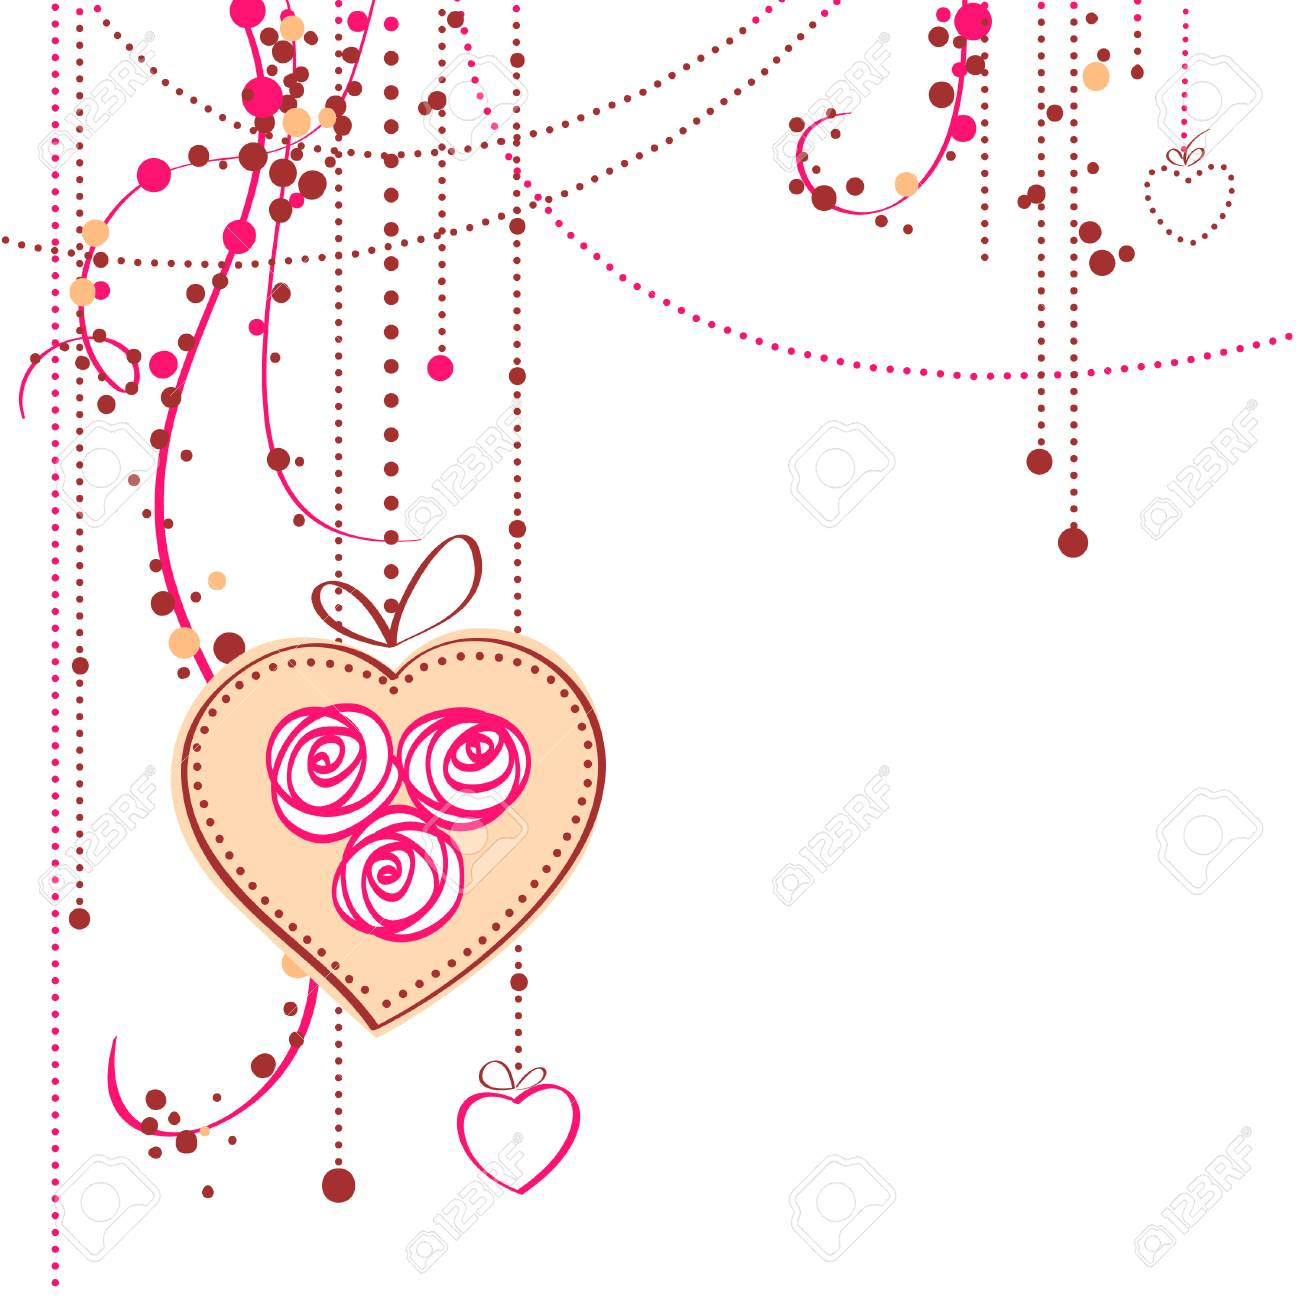 Valentine's day card vector illustration Stock Vector - 8618162